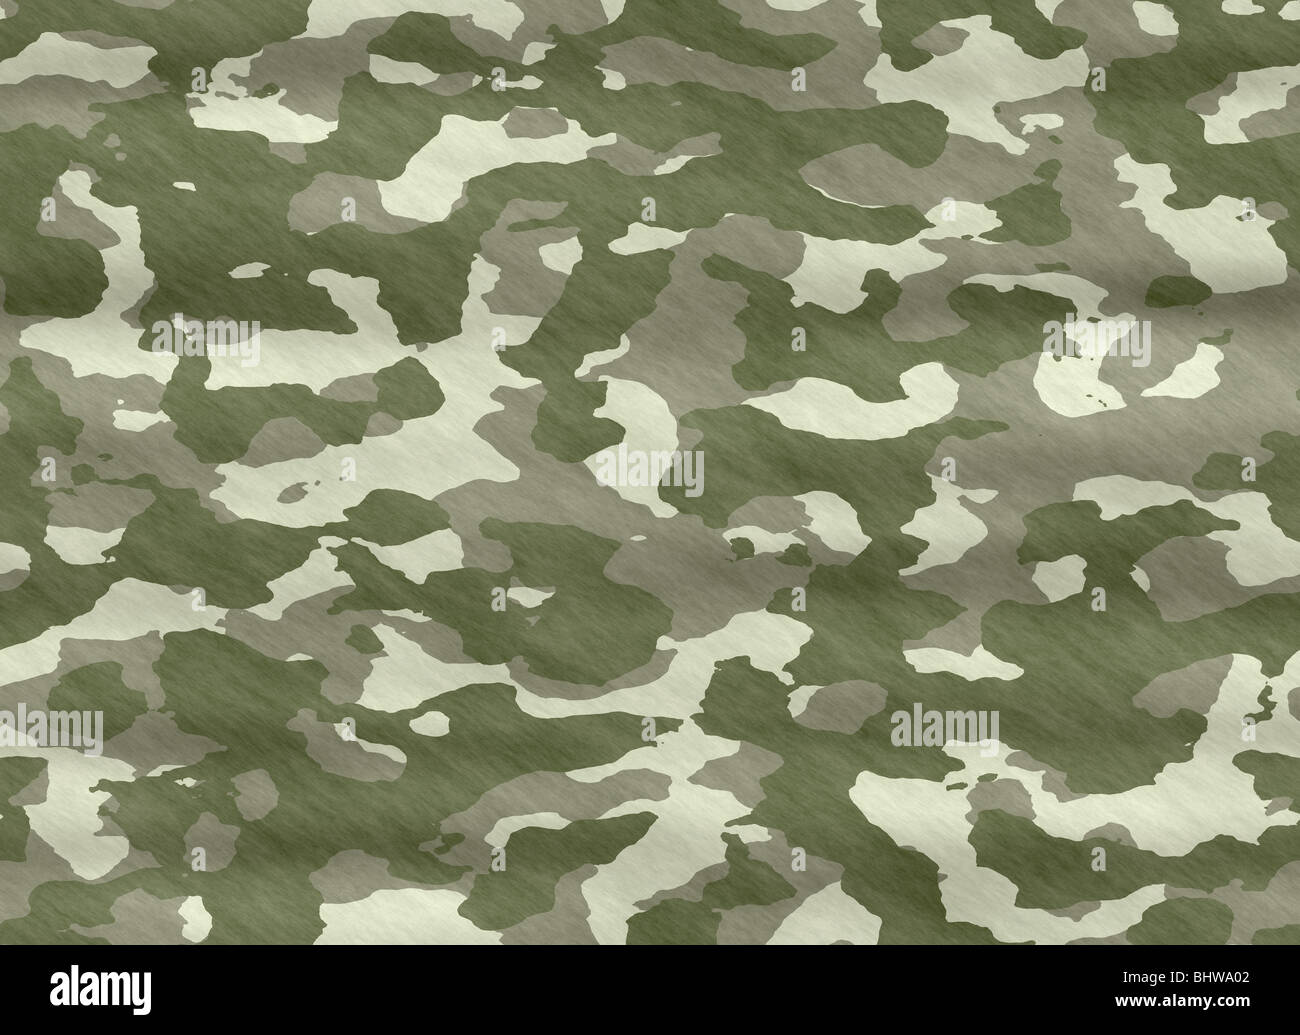 excellent background illustration of disruptive camouflage material - Stock Image